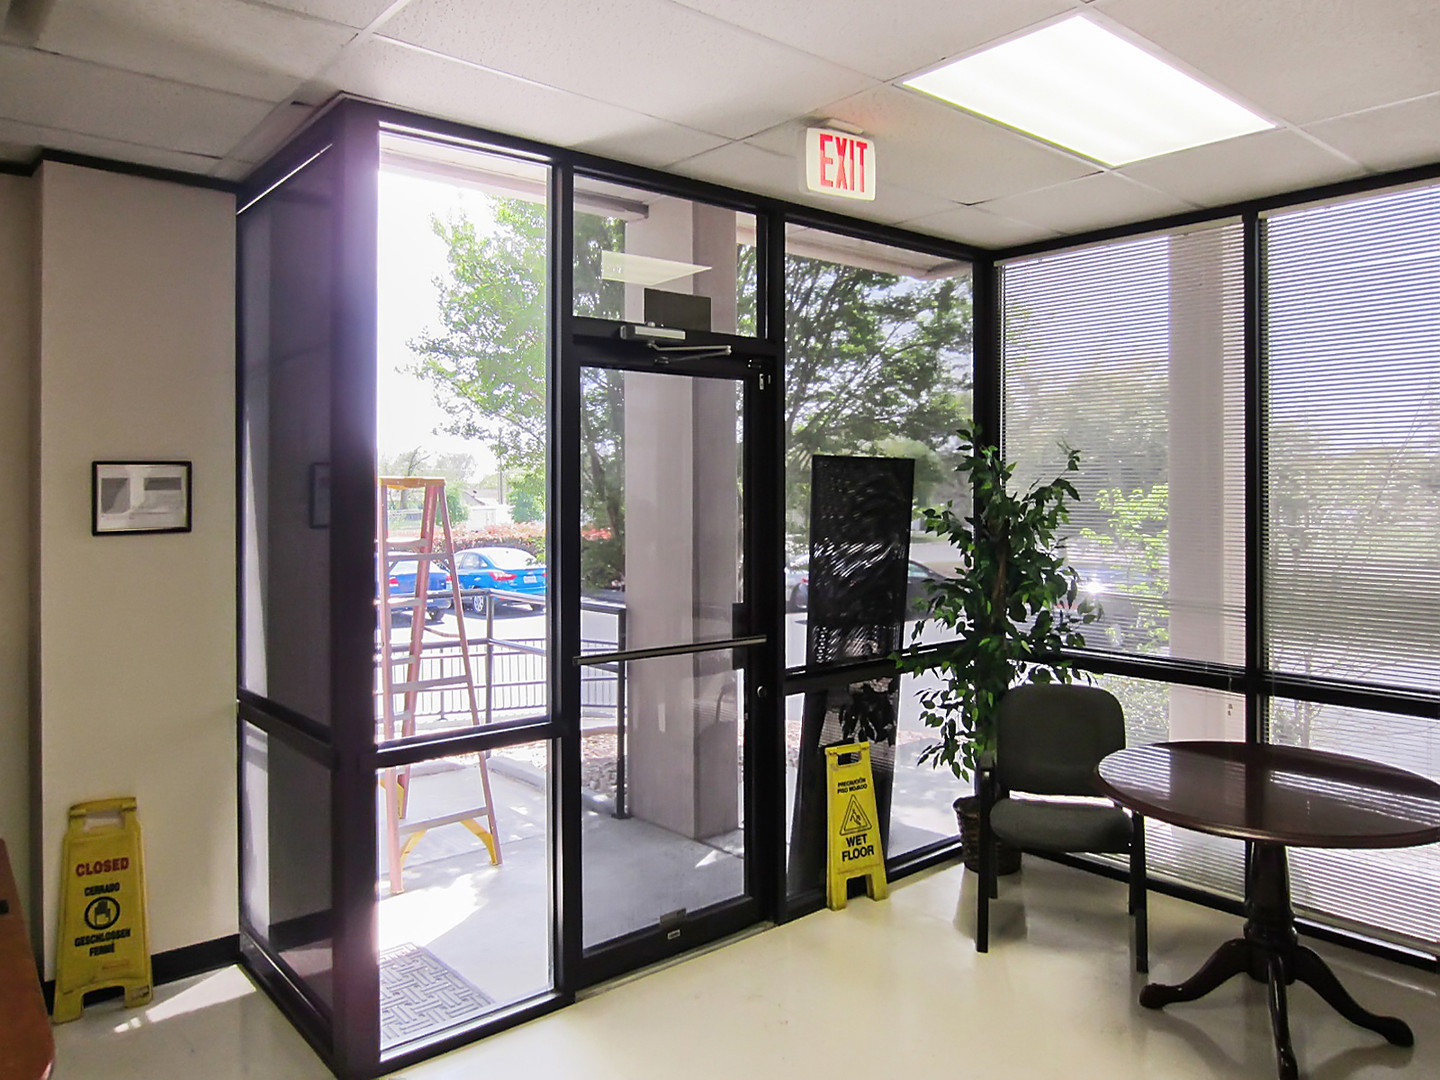 Commercial Austin tx solar screens. Interior view.